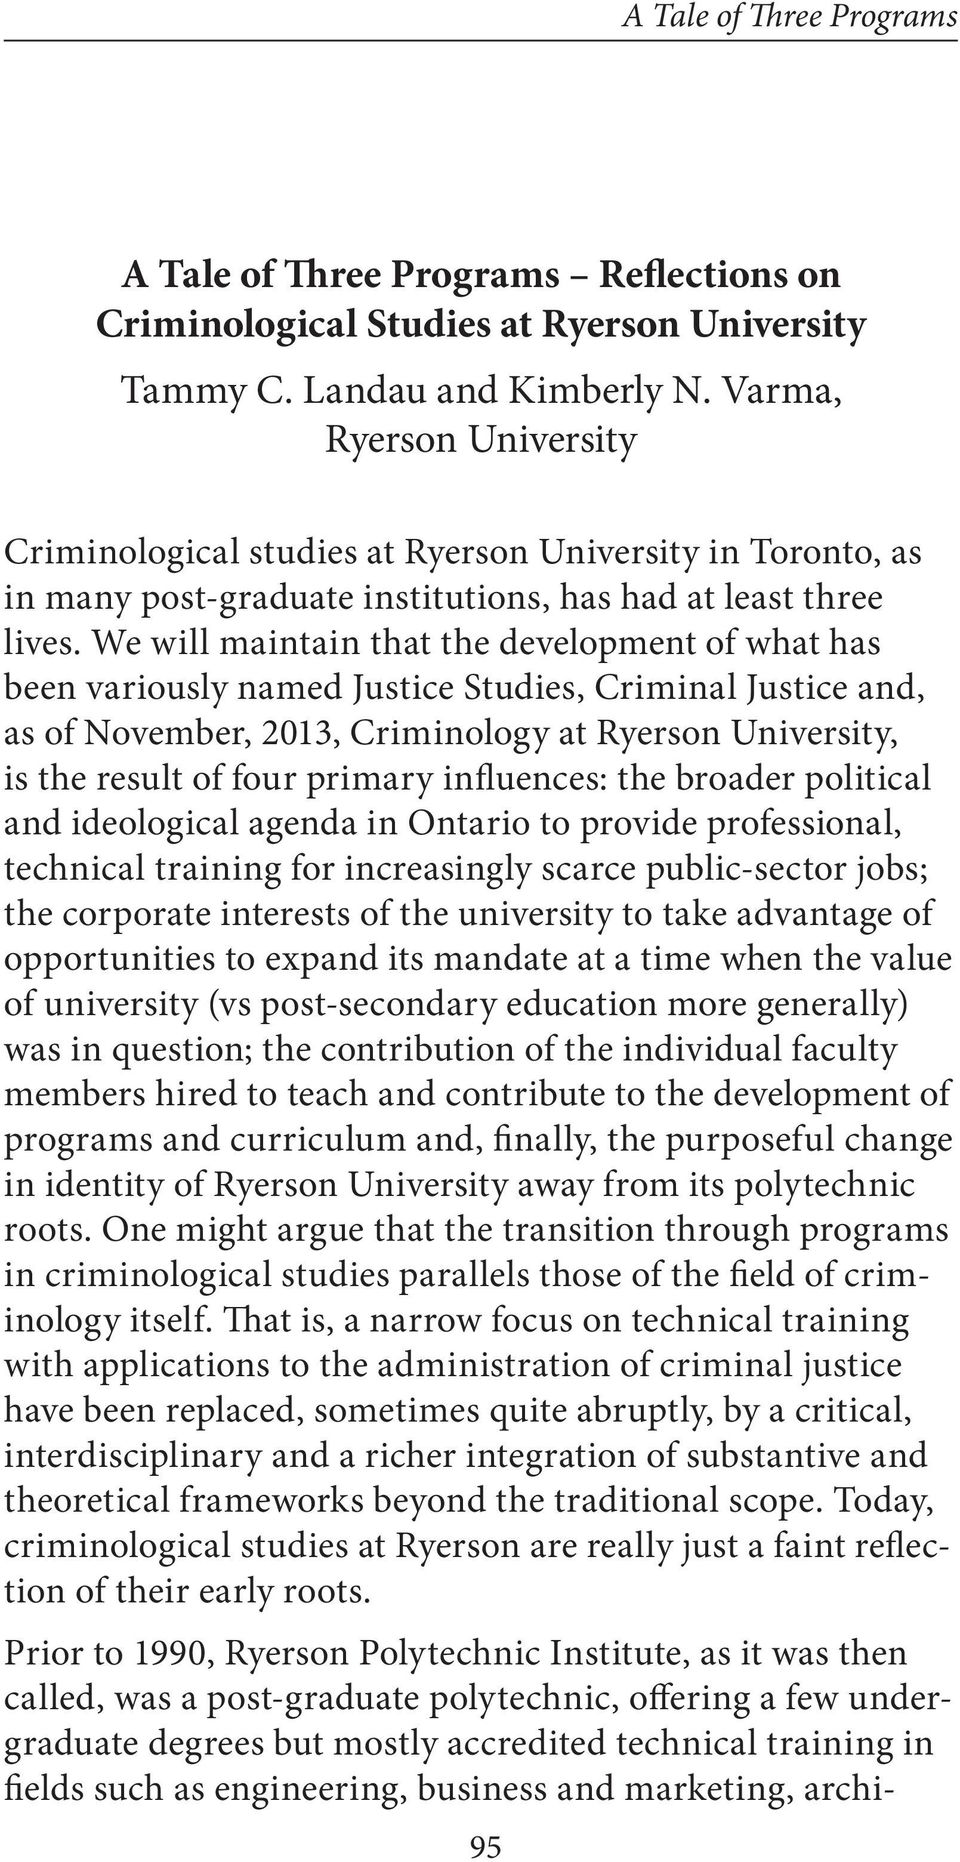 We will maintain that the development of what has been variously named Justice Studies, Criminal Justice and, as of November, 2013, Criminology at Ryerson University, is the result of four primary